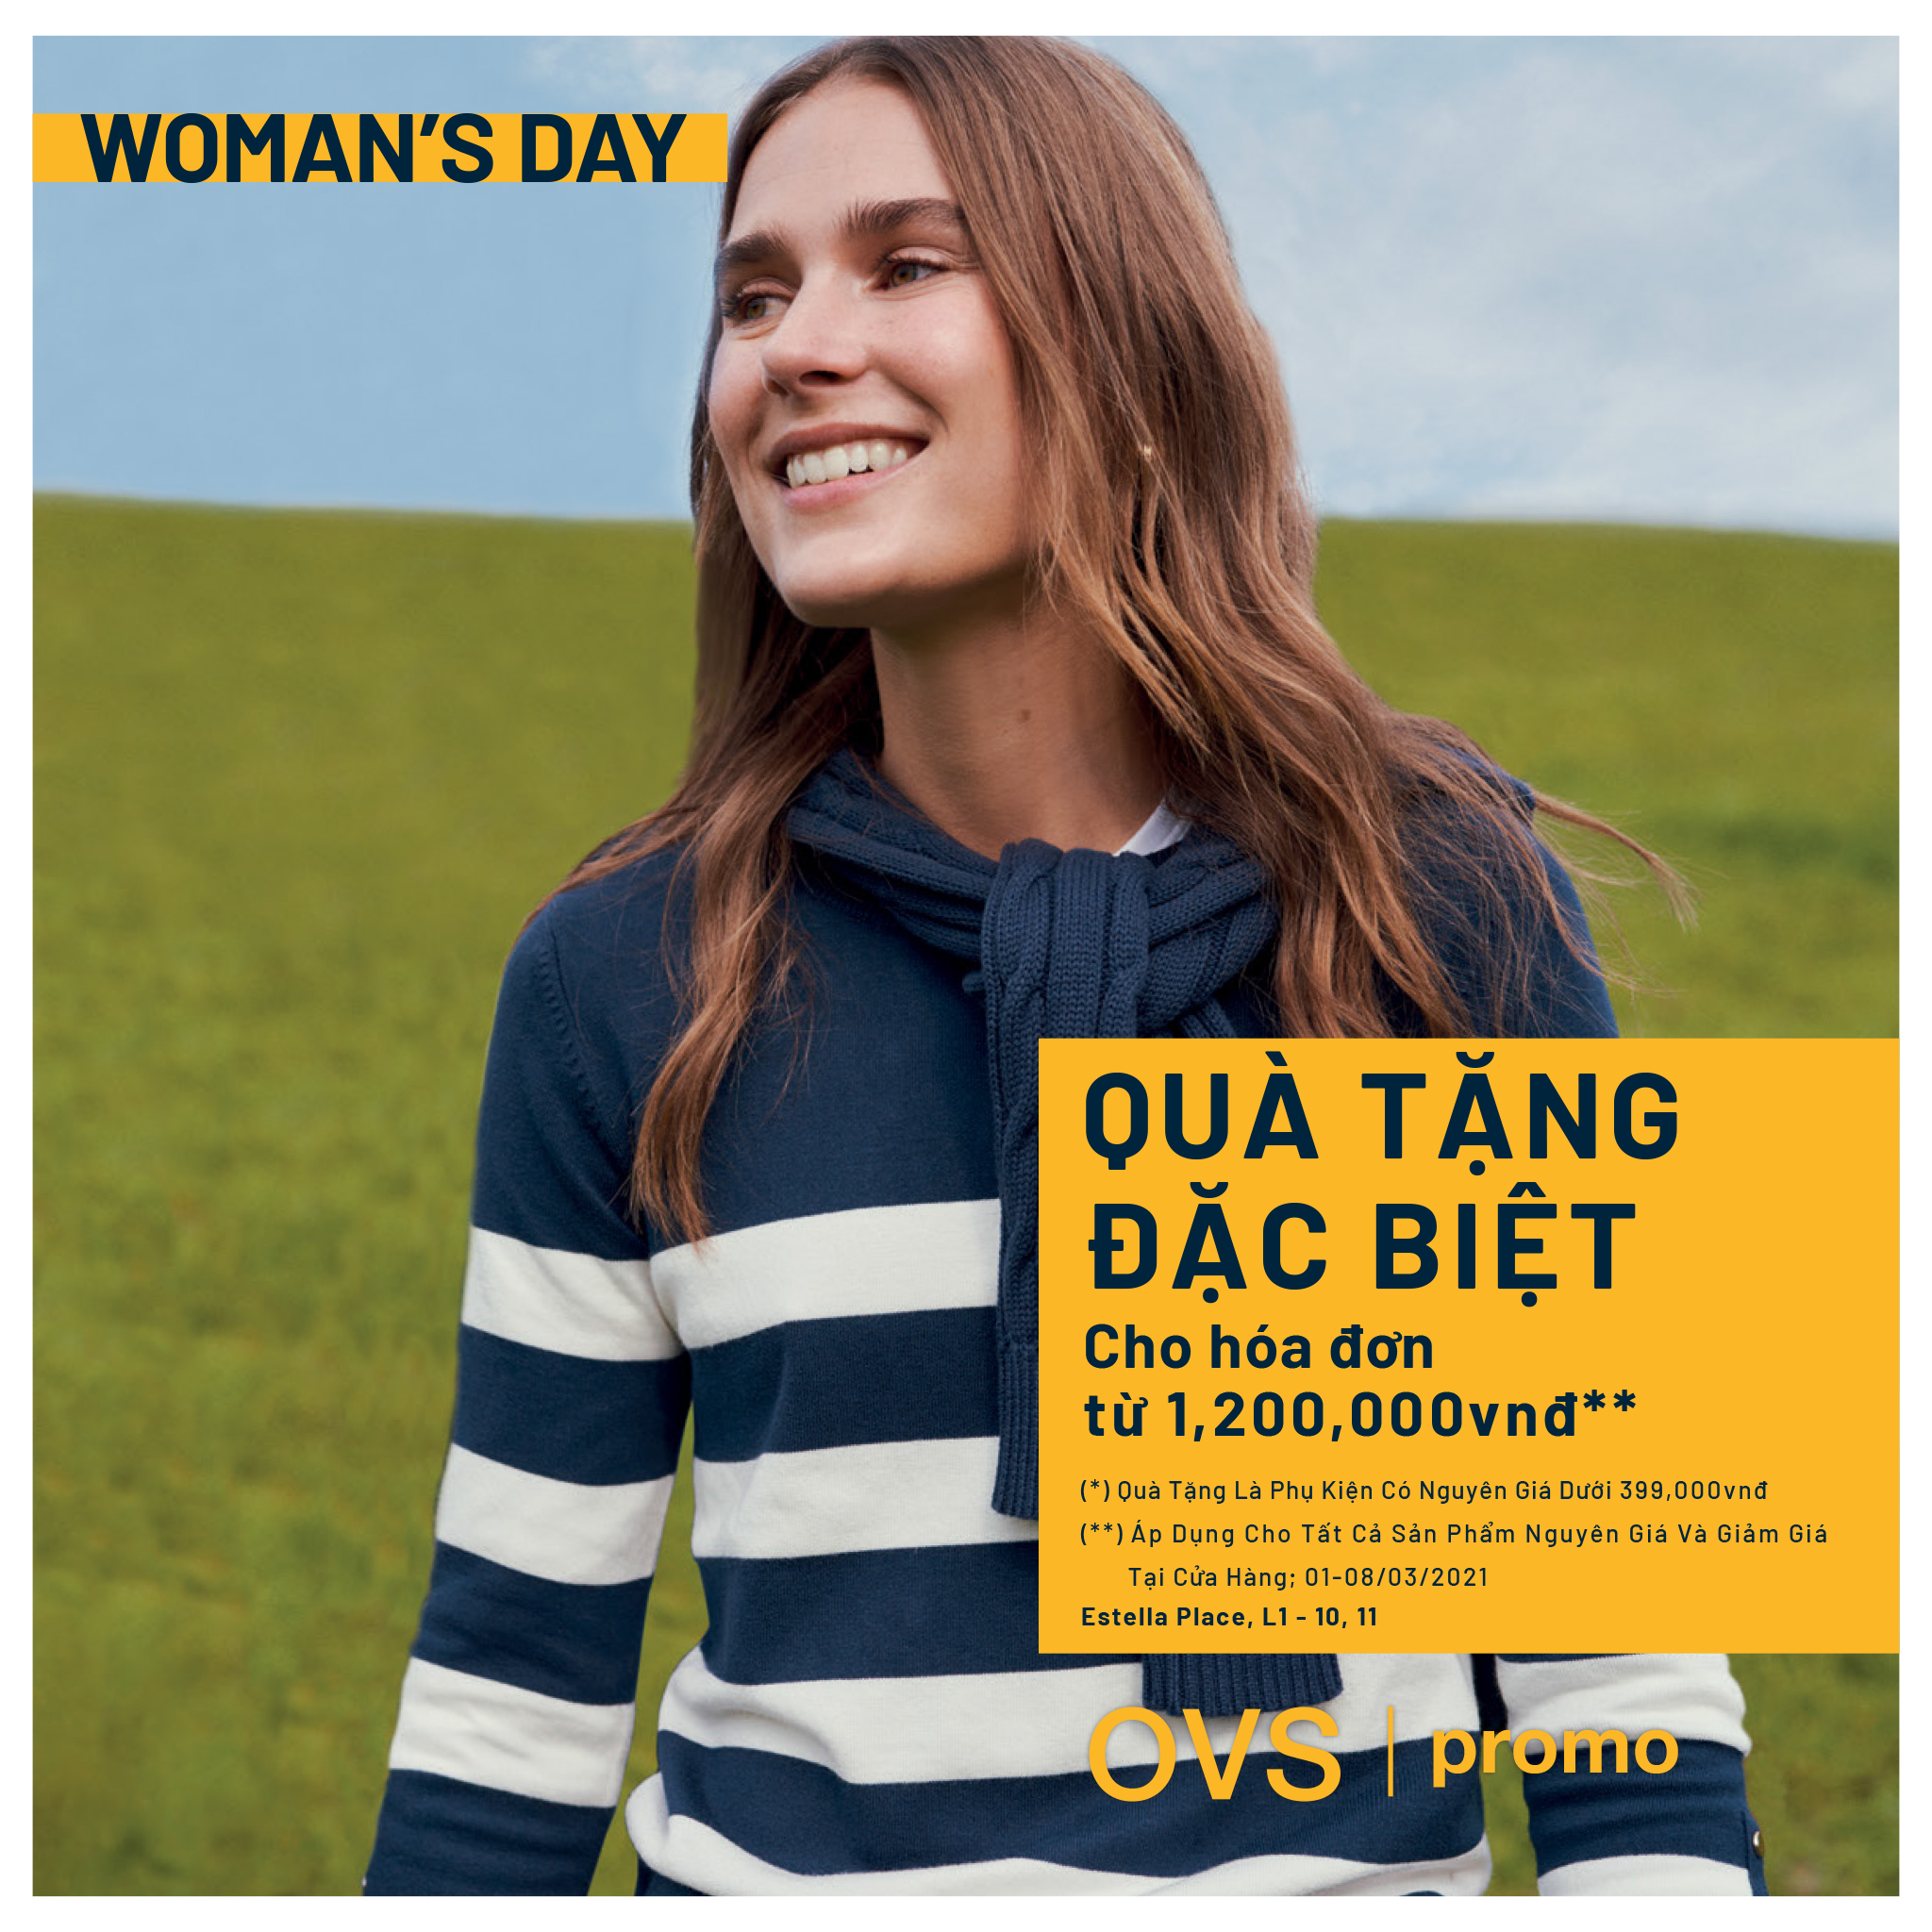 HAPPY WOMEN'S DAY FROM OVS